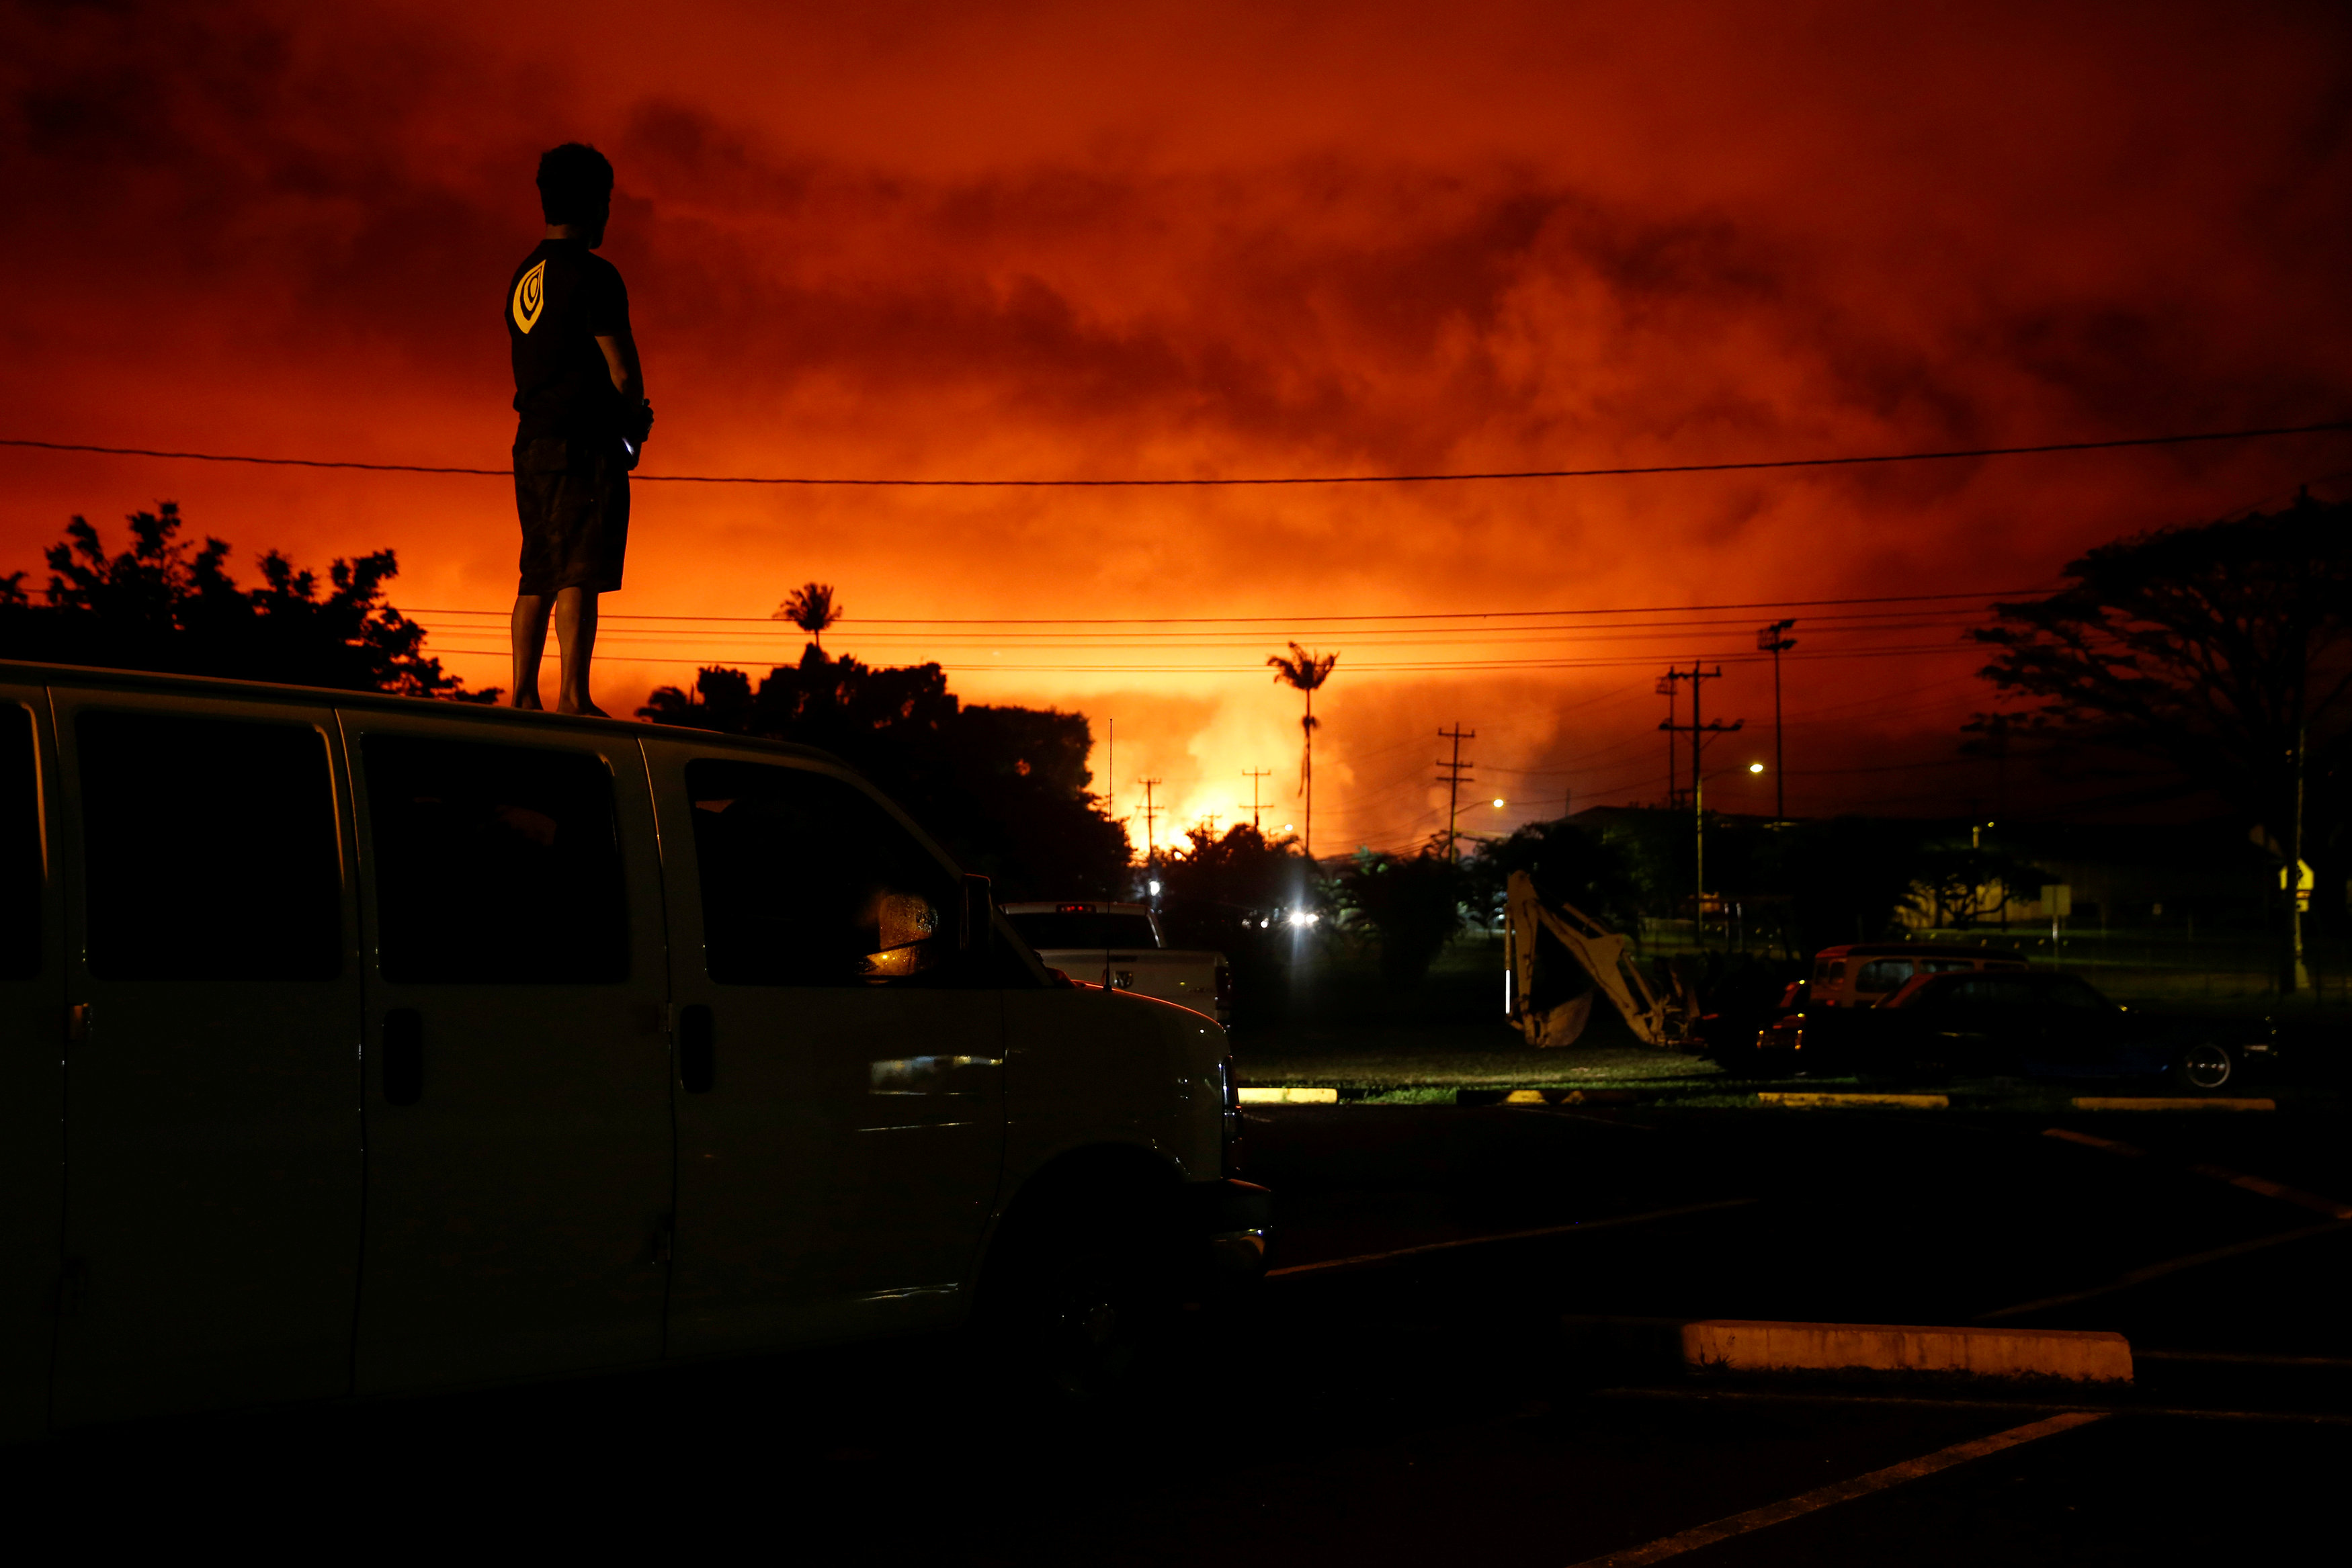 Darryl Sumiki, 52, of Hilo, watches as lava lights up the sky above Pahoa during ongoing eruptions of the Kilauea Volcano in Hawaii, U.S., June 2, 2018. REUTERS/Terray Sylvester